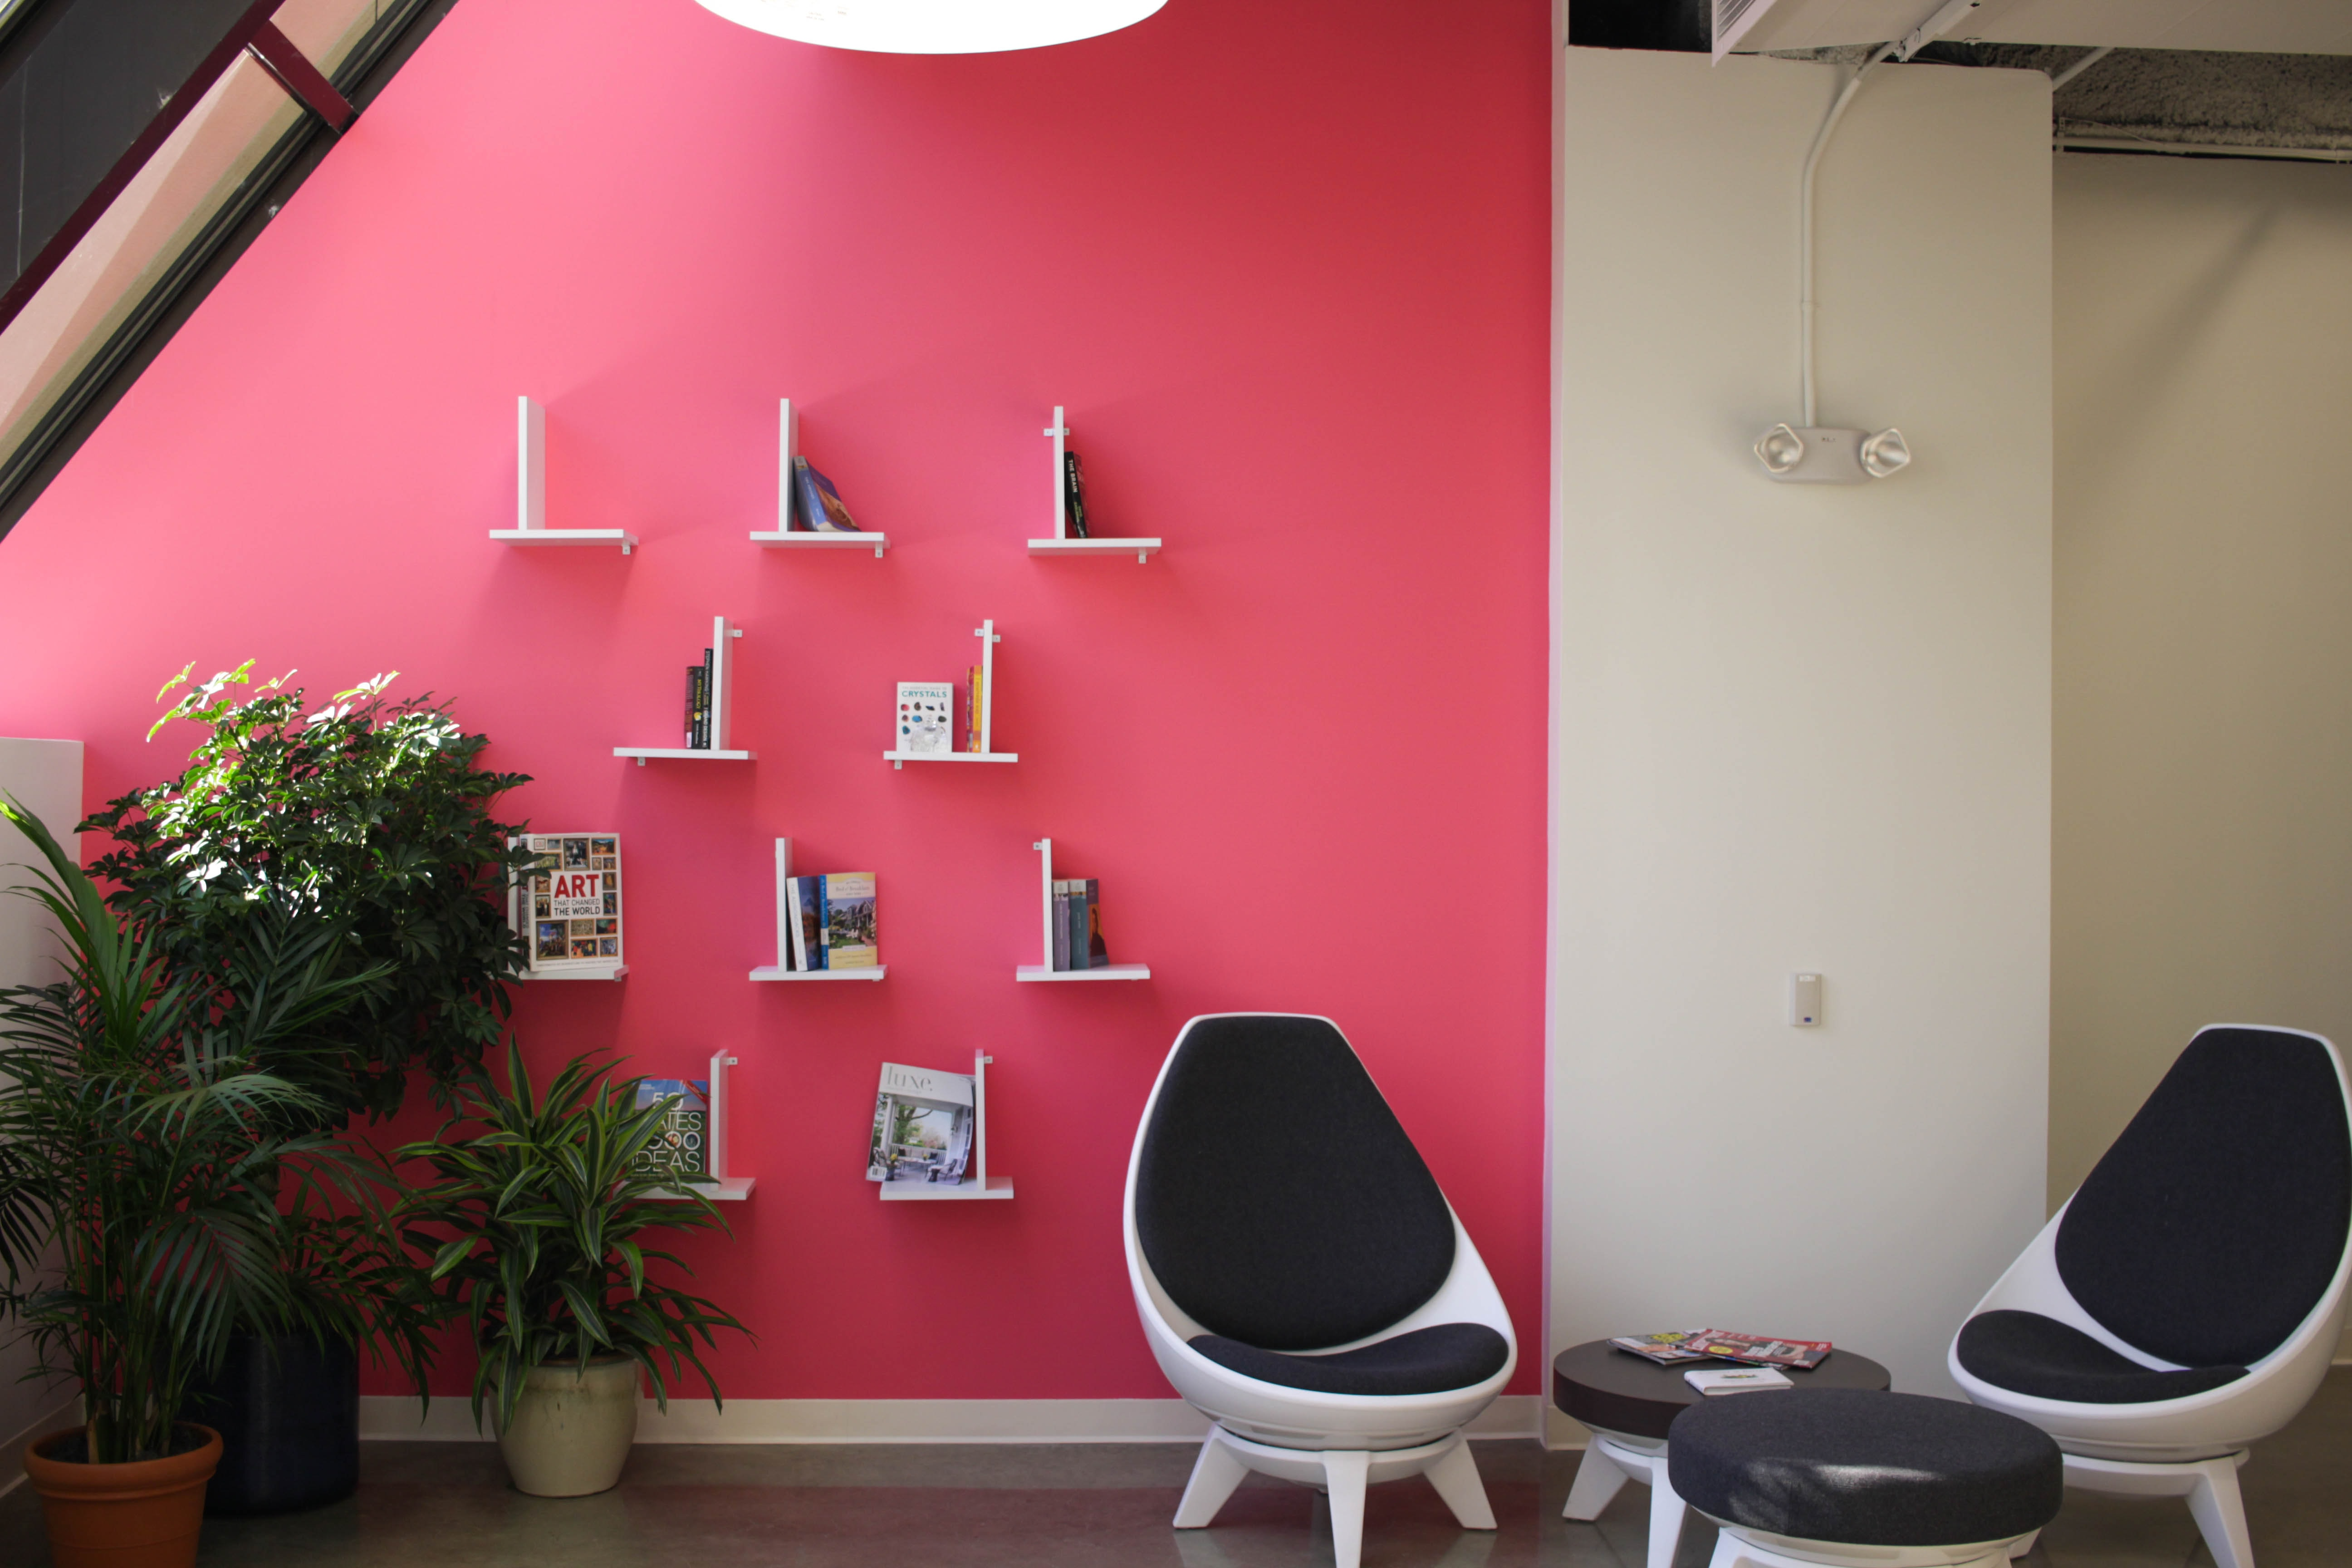 two white-and-black chairs near pink painted wall